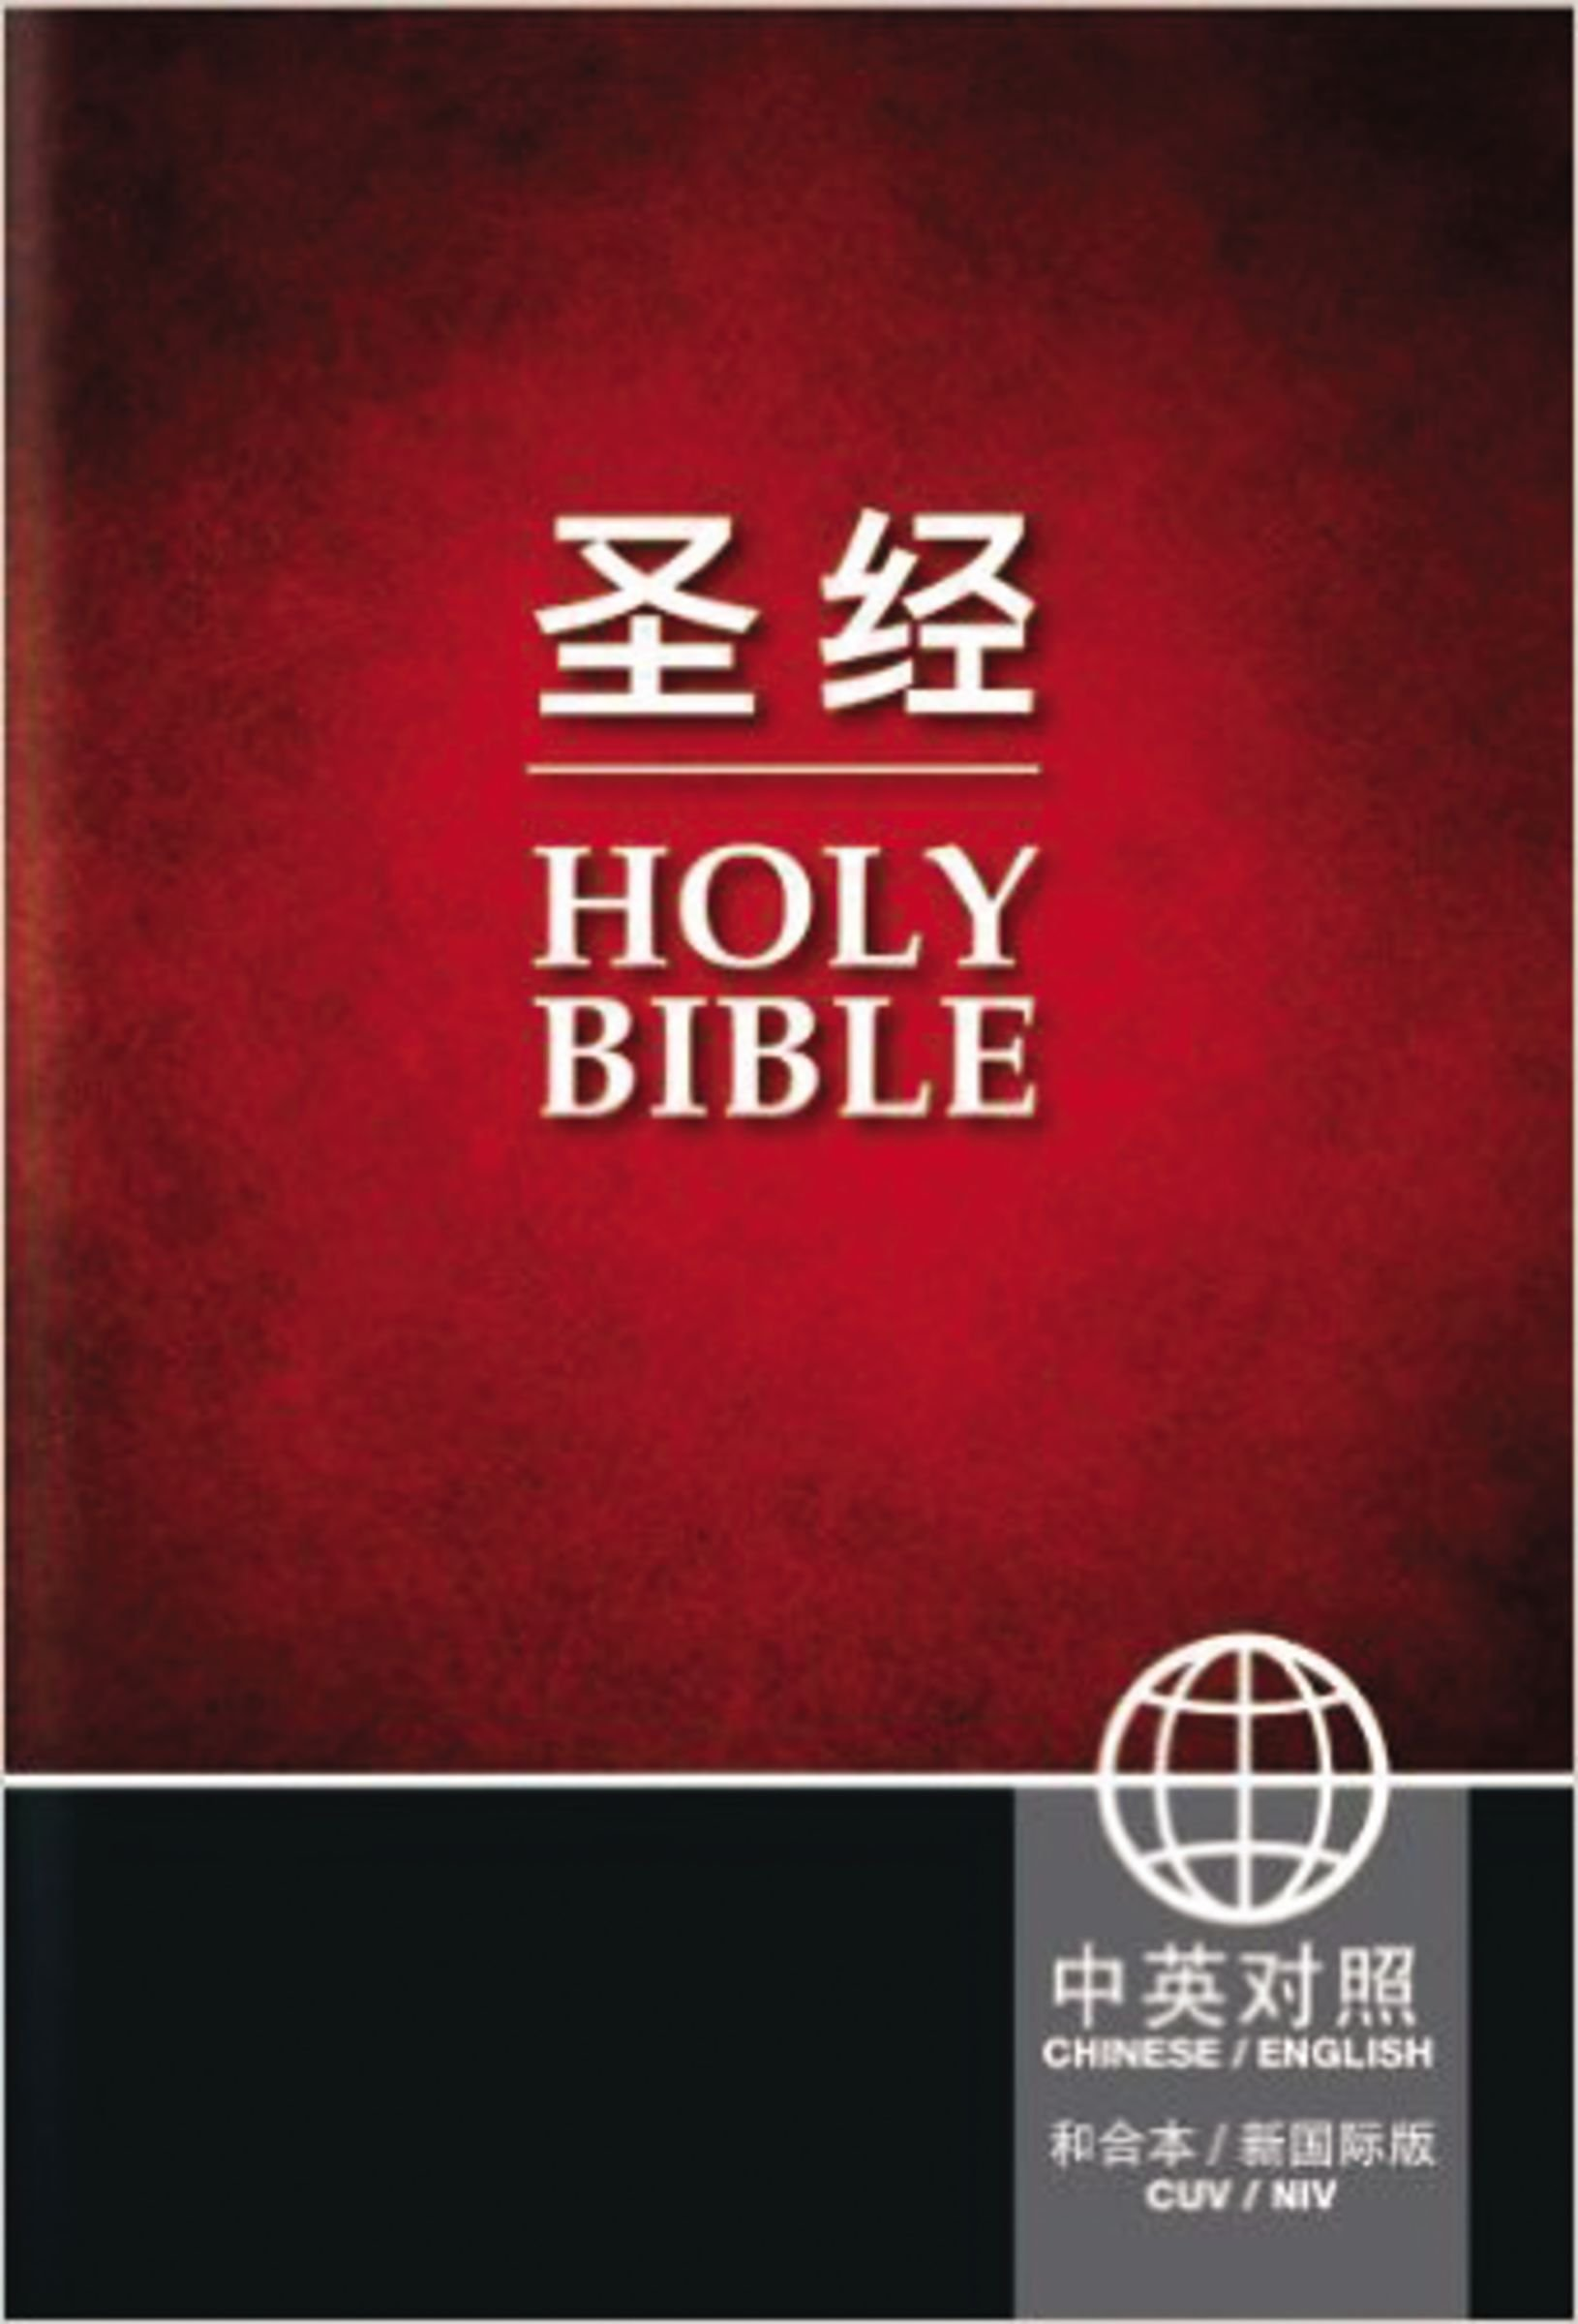 CUV (Simplified Script), NIV, Chinese/English Bilingual Bible, Paperback, Red/Black